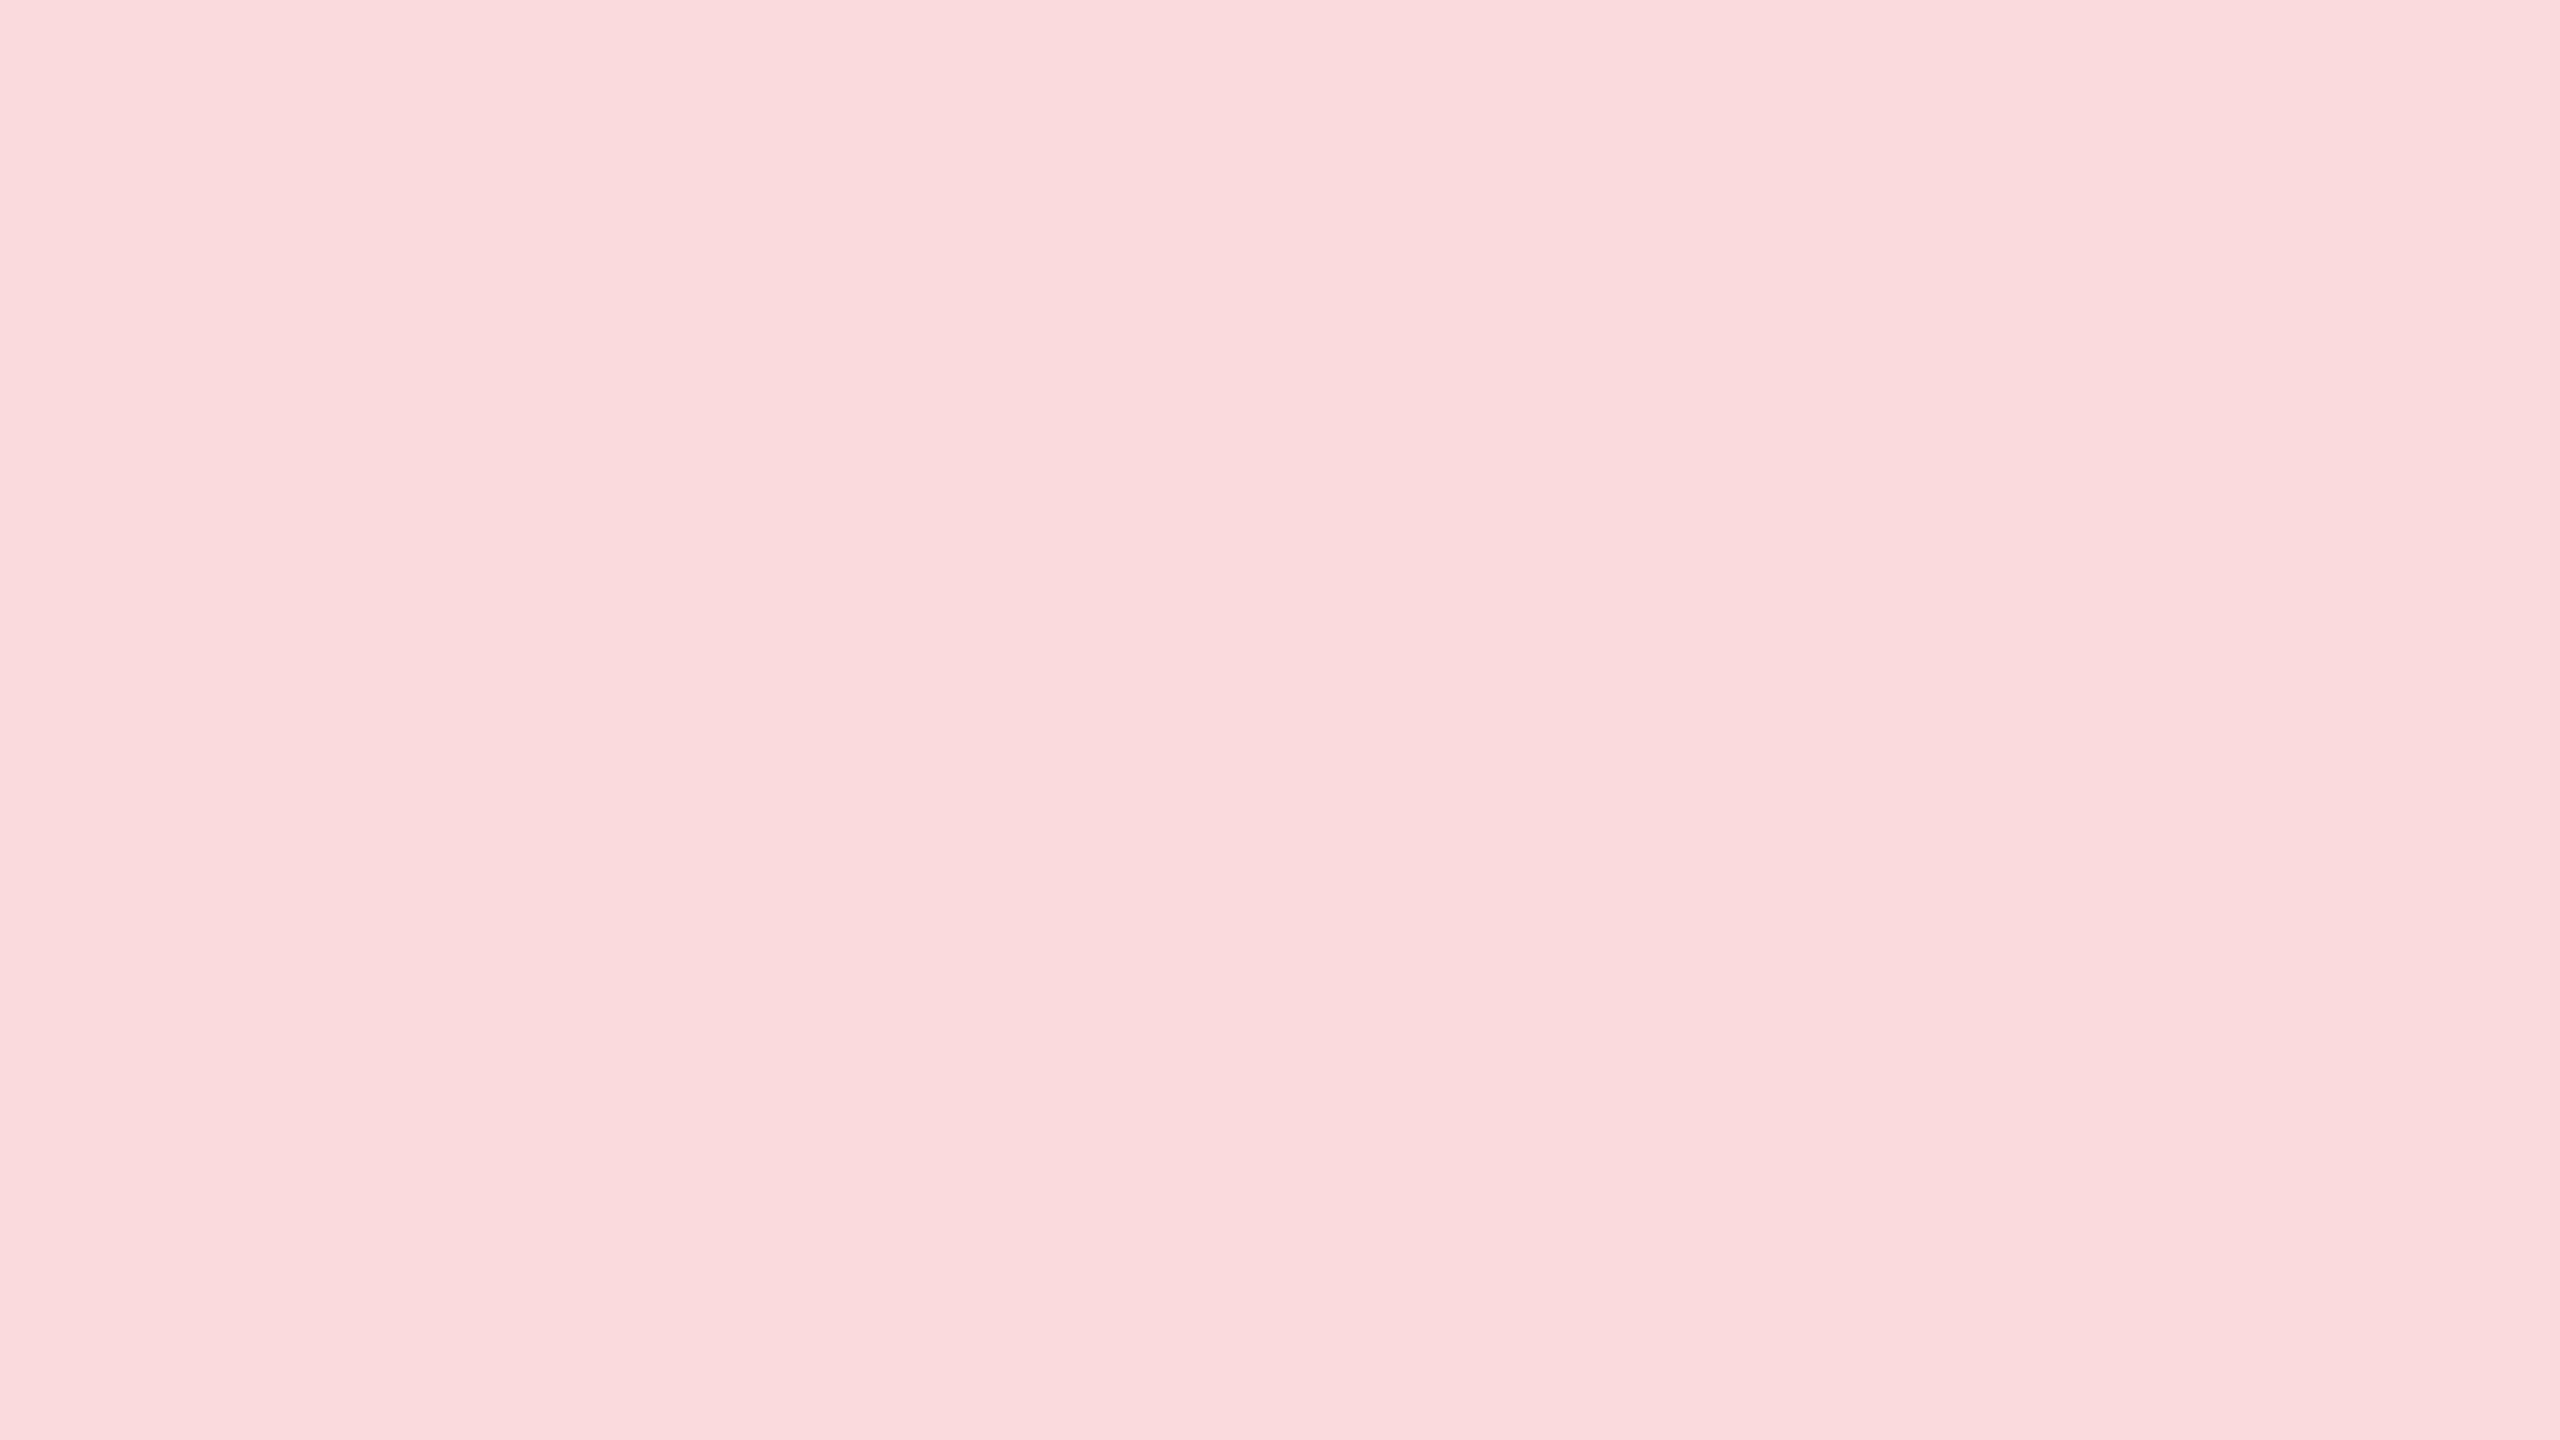 Levis Verf 2560x1440 Pale Pink Solid Color Background